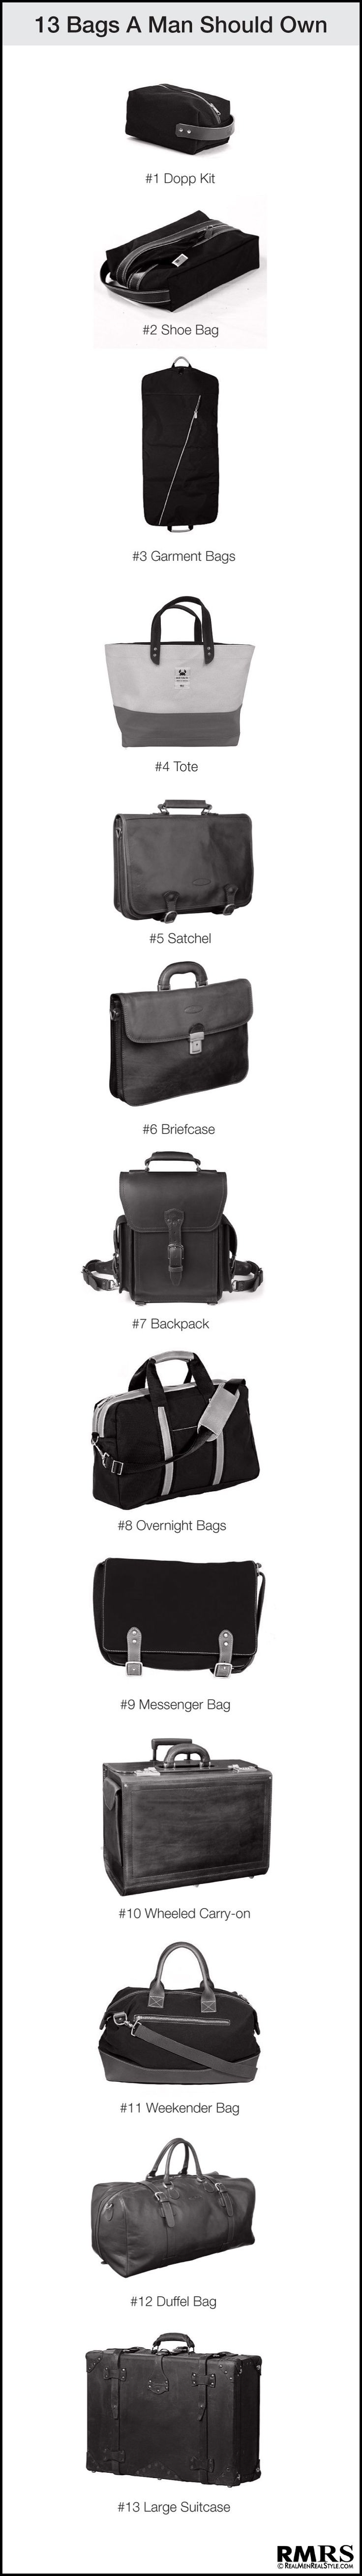 13 Bags A Man Should Own  Dopp Kit Shoe Bag Garment Bags Tote Satchel Briefcase Backpack Overnight Bags Messenger Bag Wheeled Carry-on  Weekender Bag Duffel Bag Large Suitcase